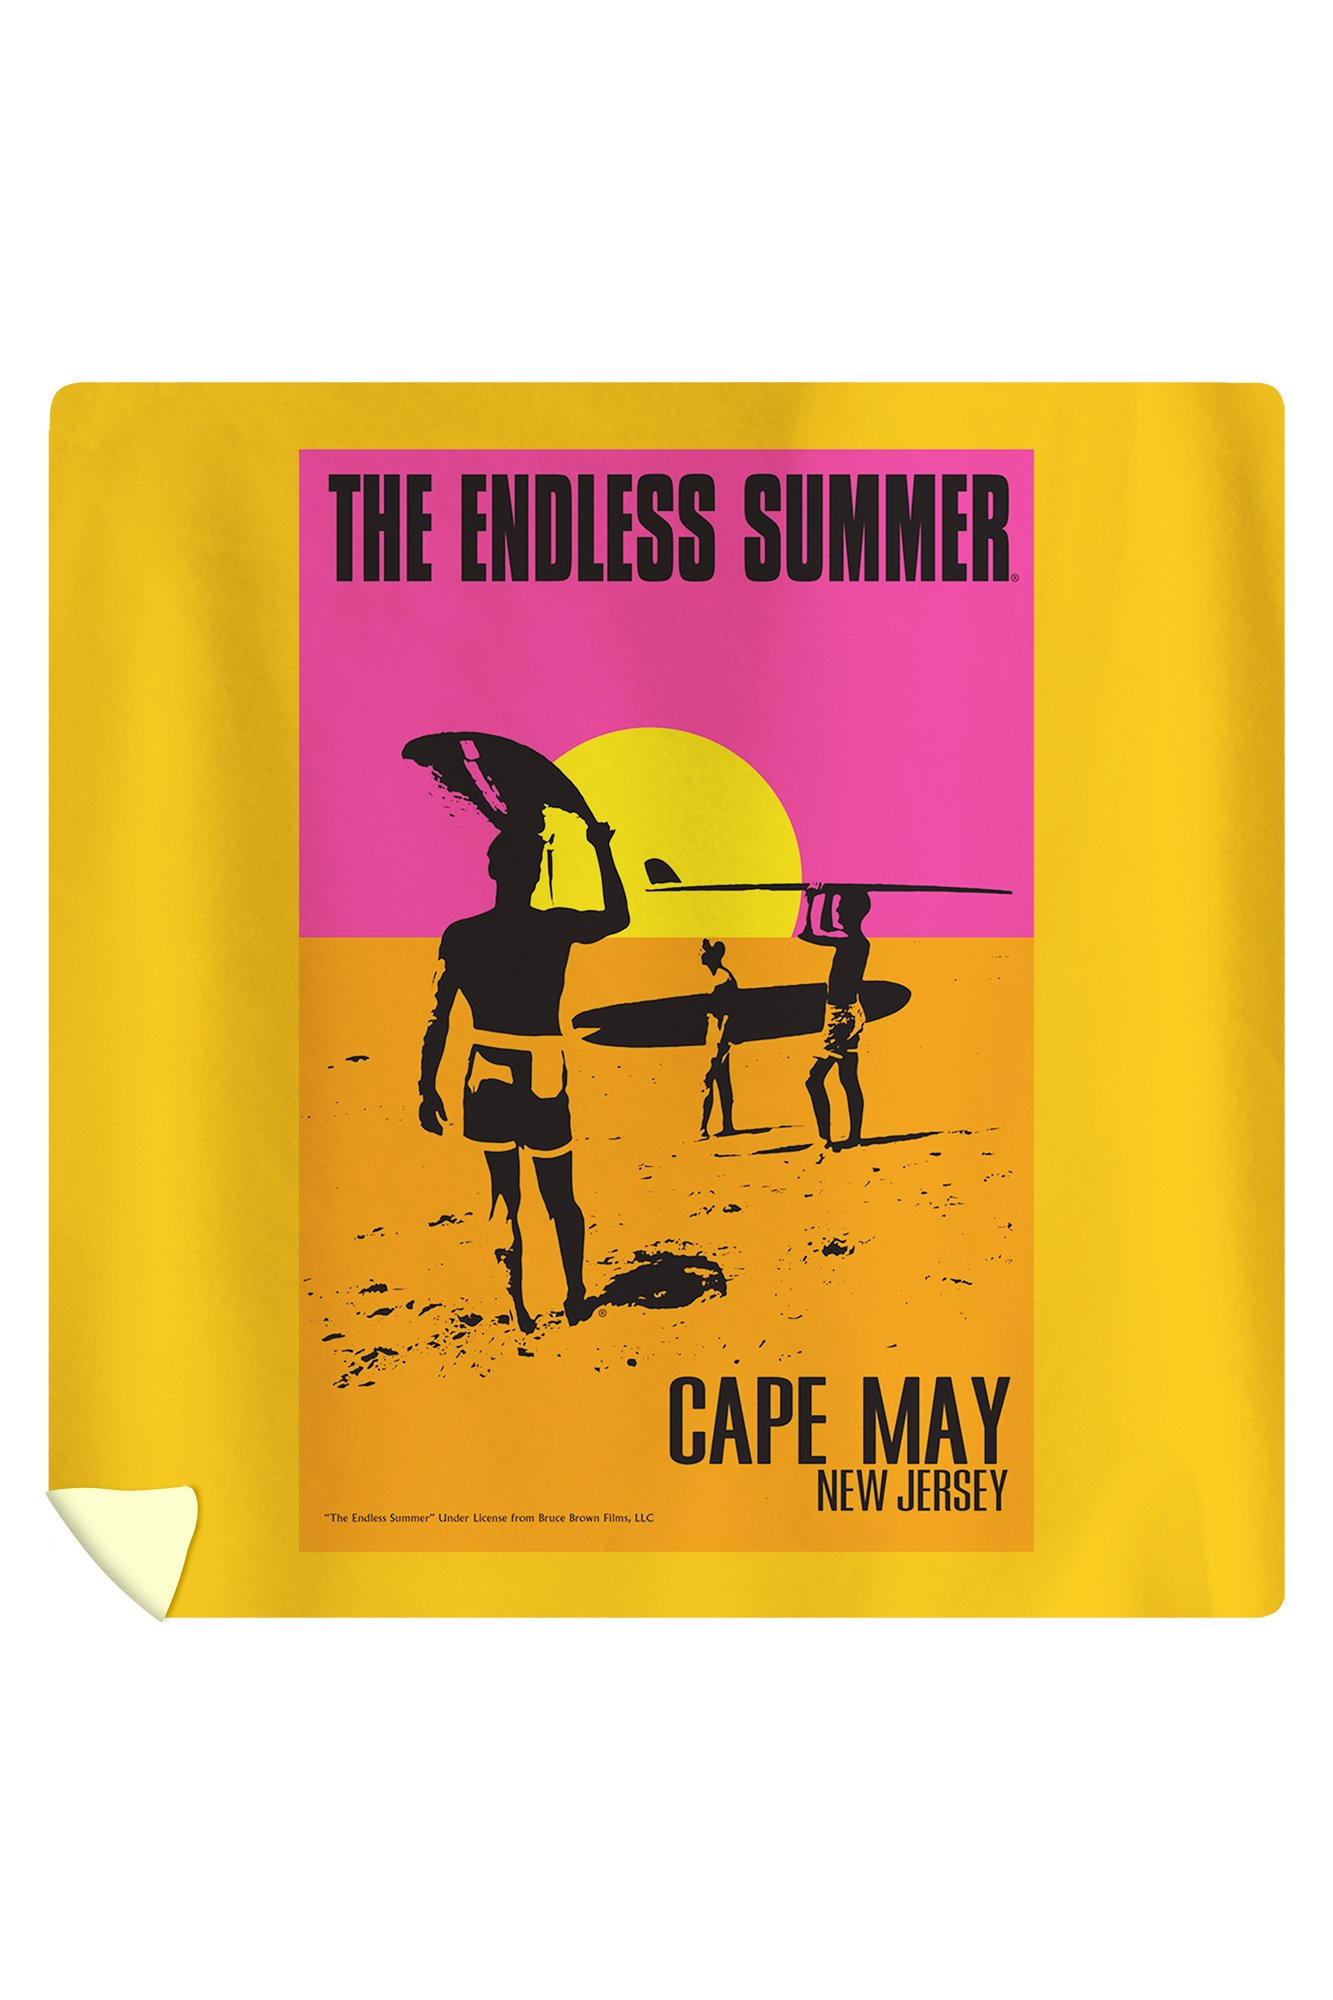 Cape May, New Jersey - The Endless Summer - Original Movie Poster (88x88 Queen Microfiber Duvet Cover)